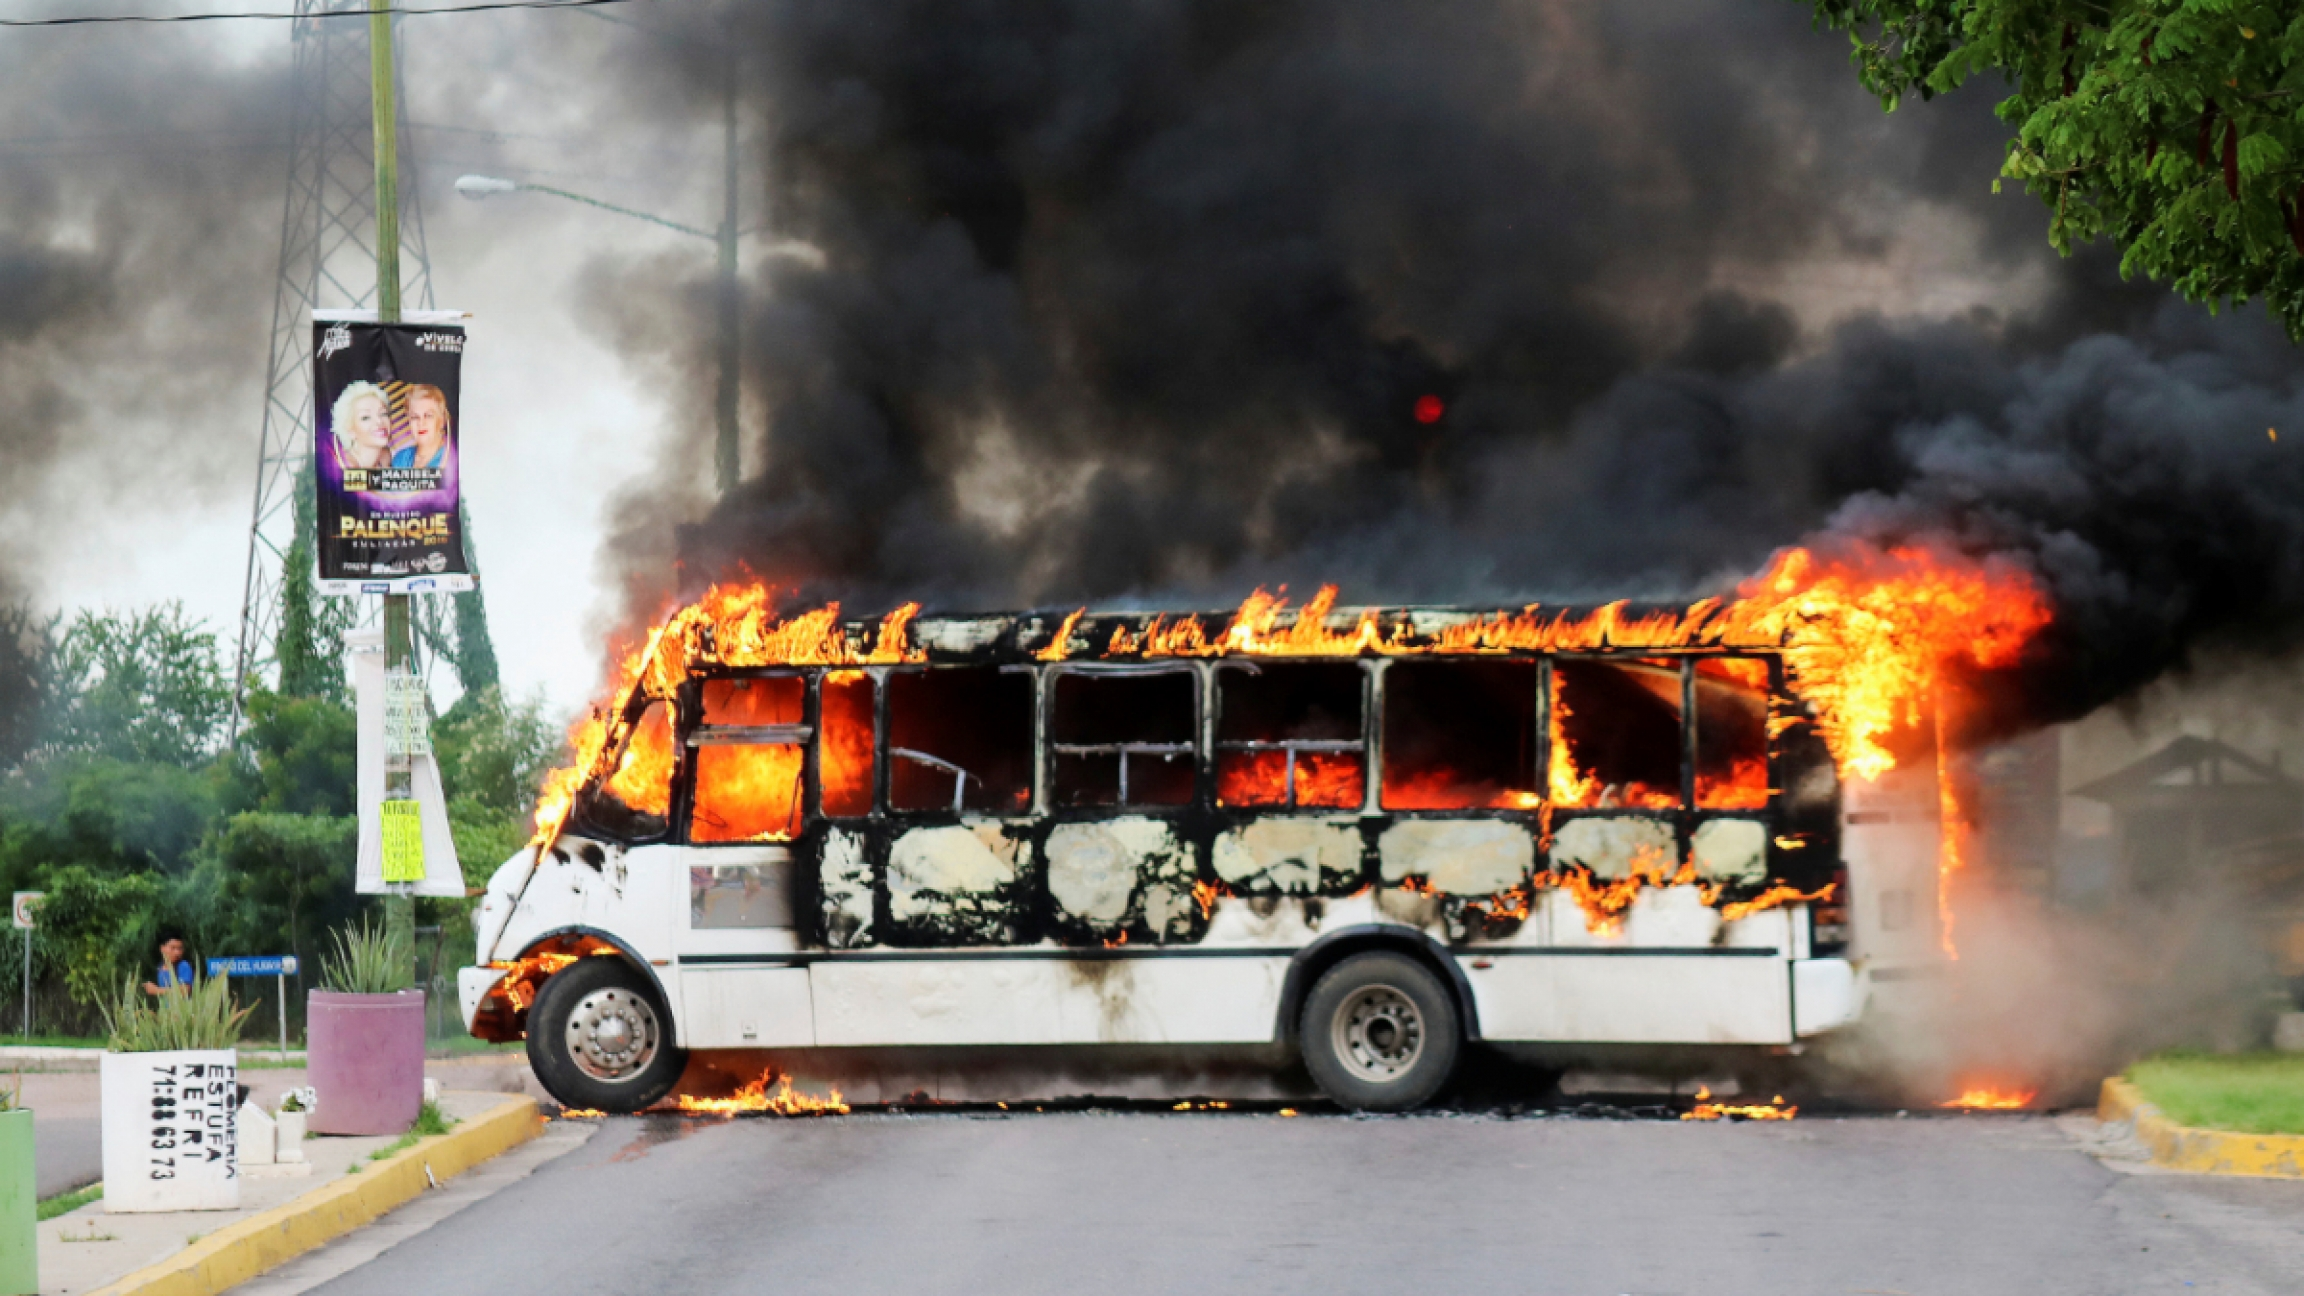 a white bus is engulfed in flames.